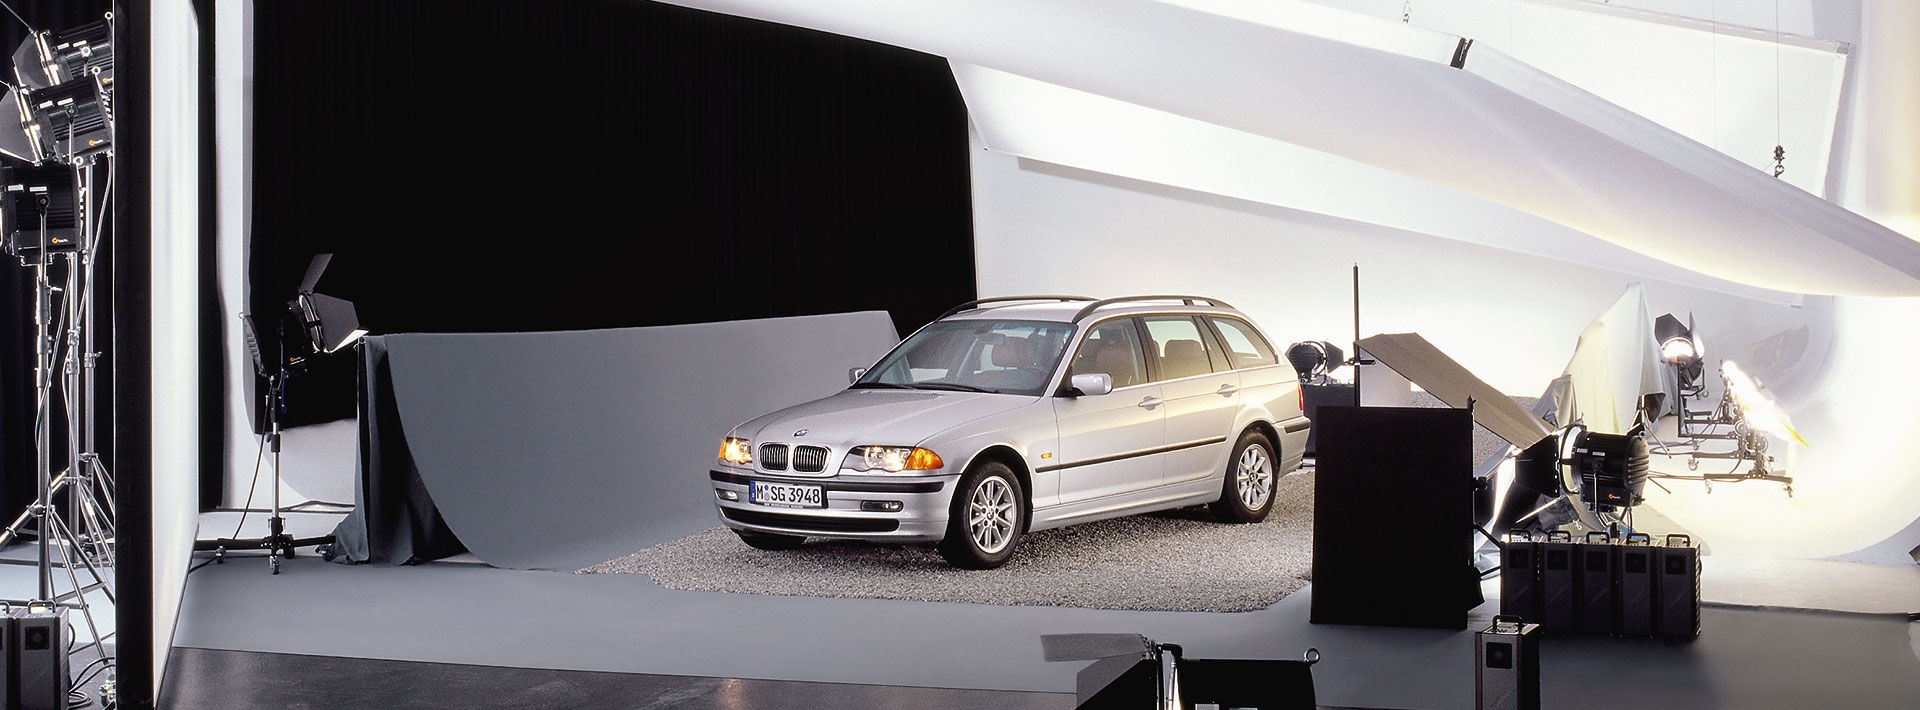 Referenzen BMW Fotostudio